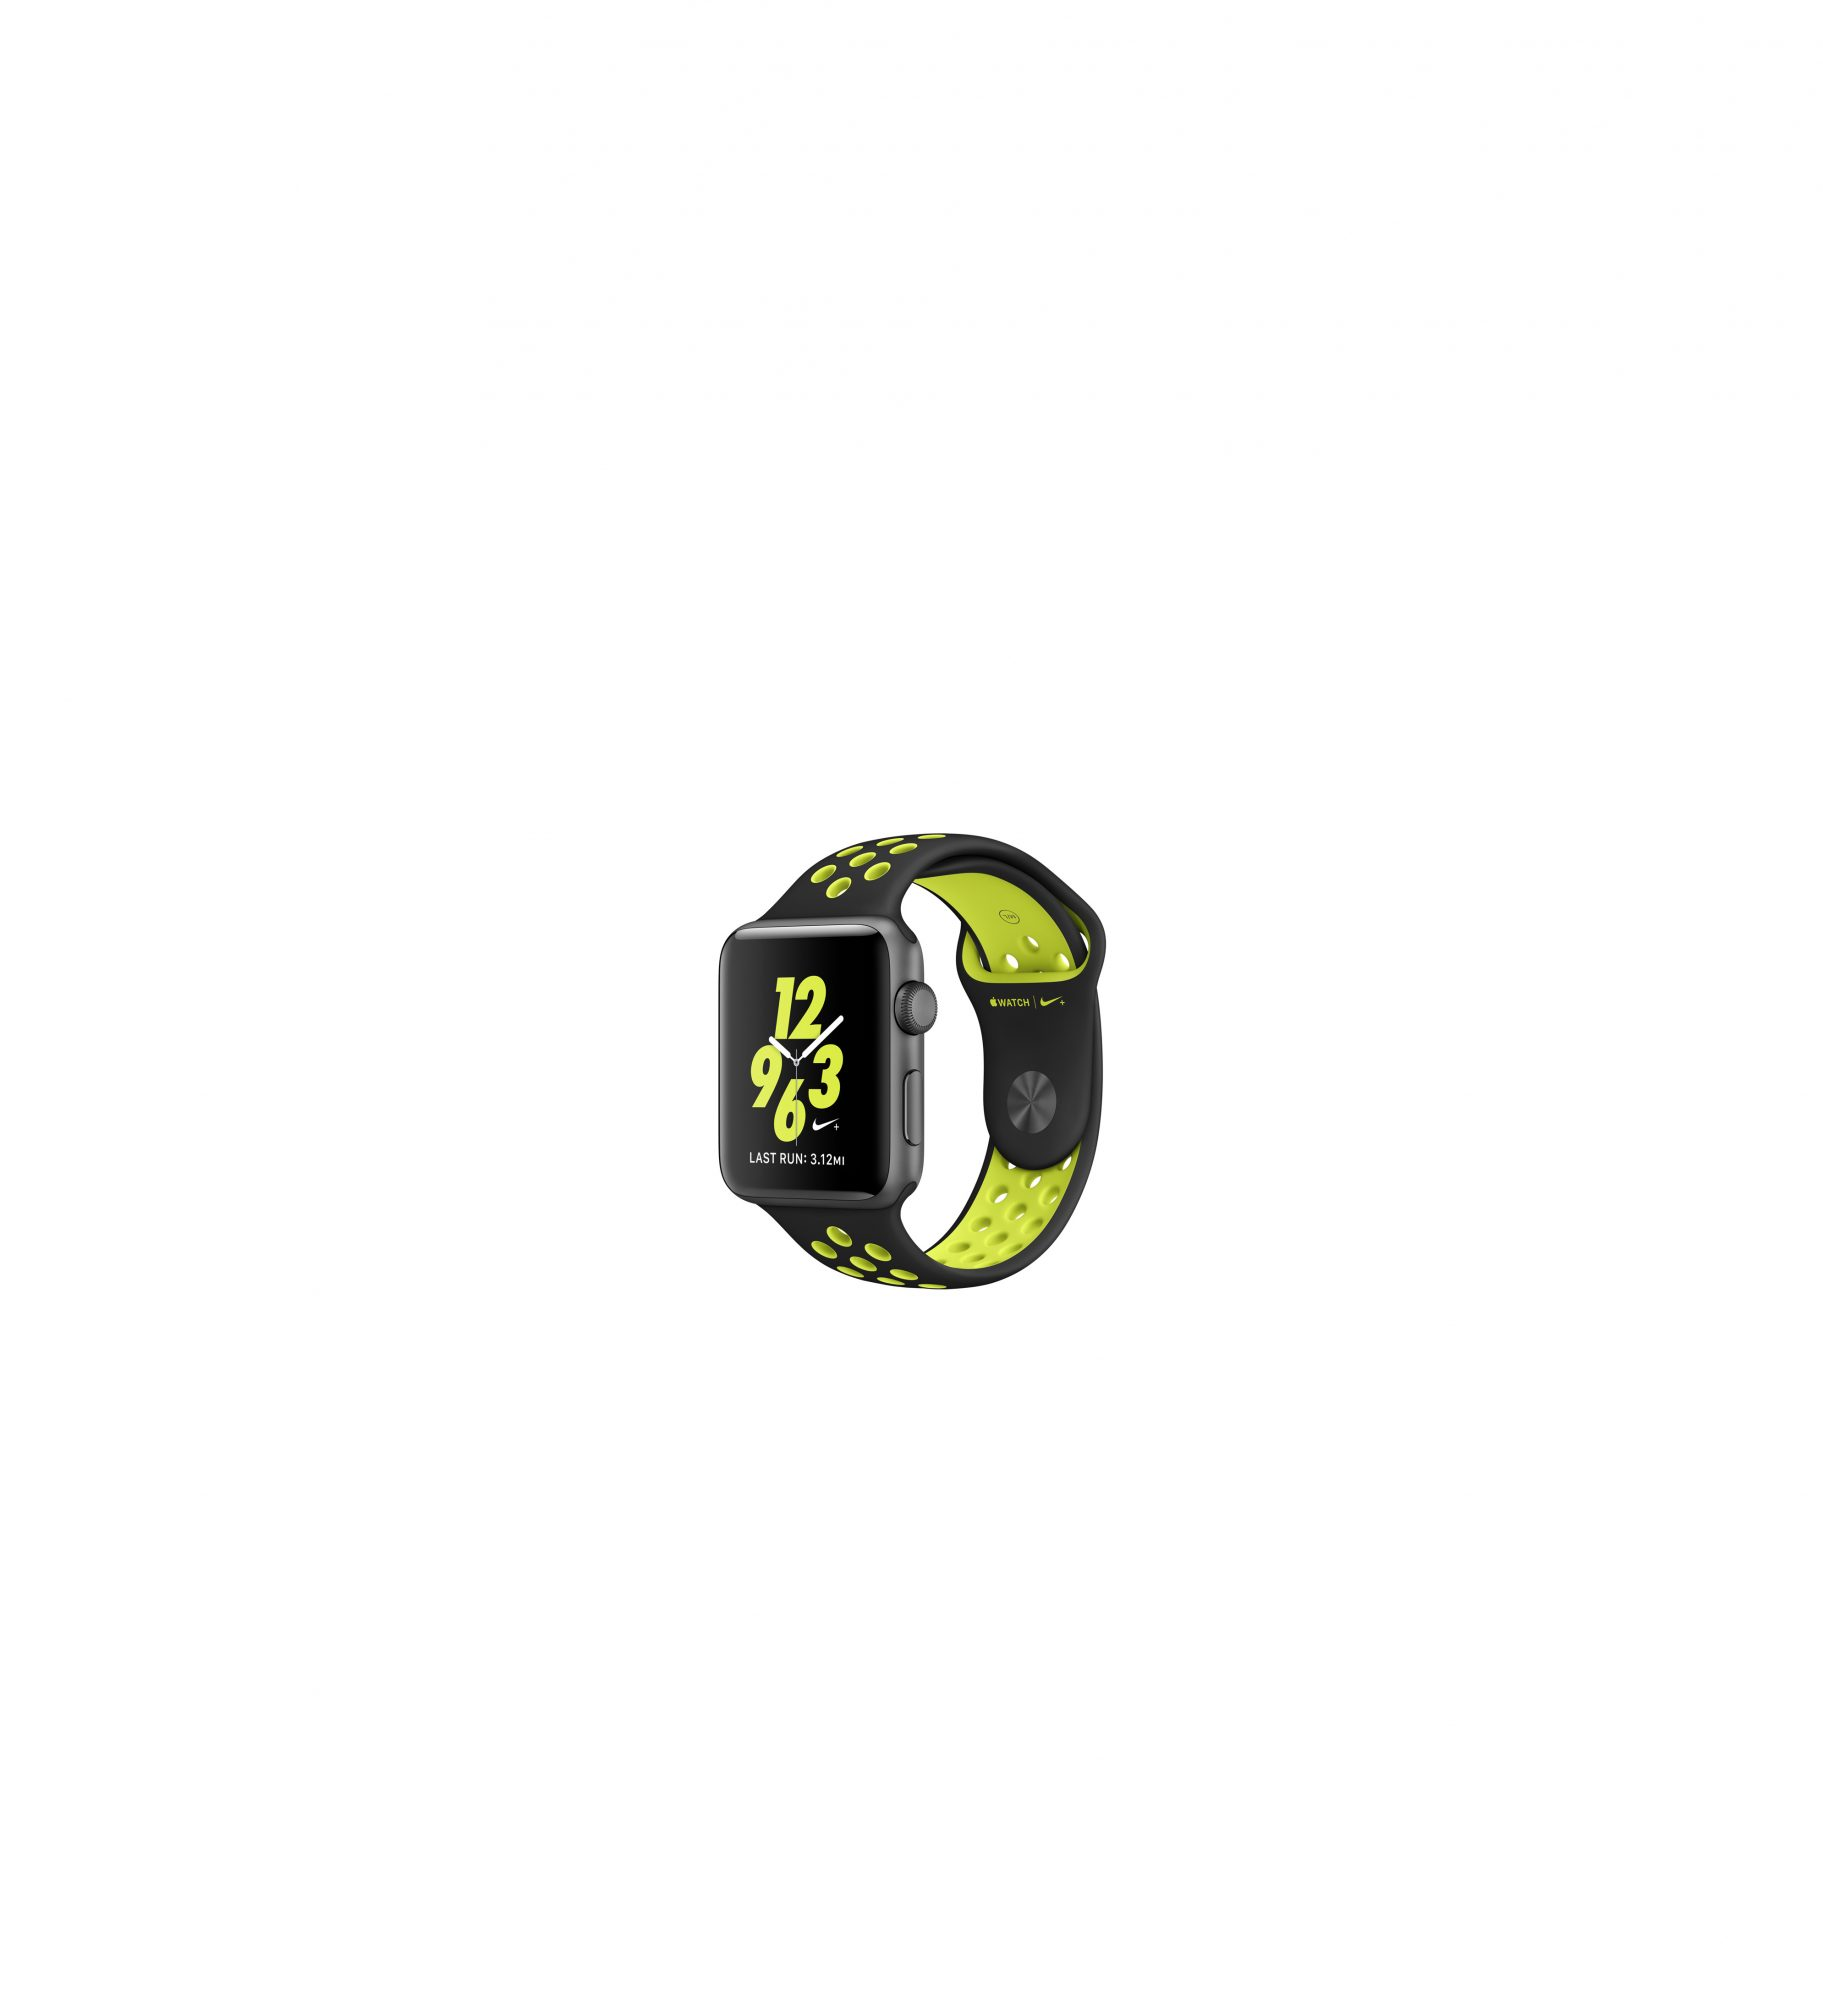 garmin wired the runner series watches forerunner review hr workout